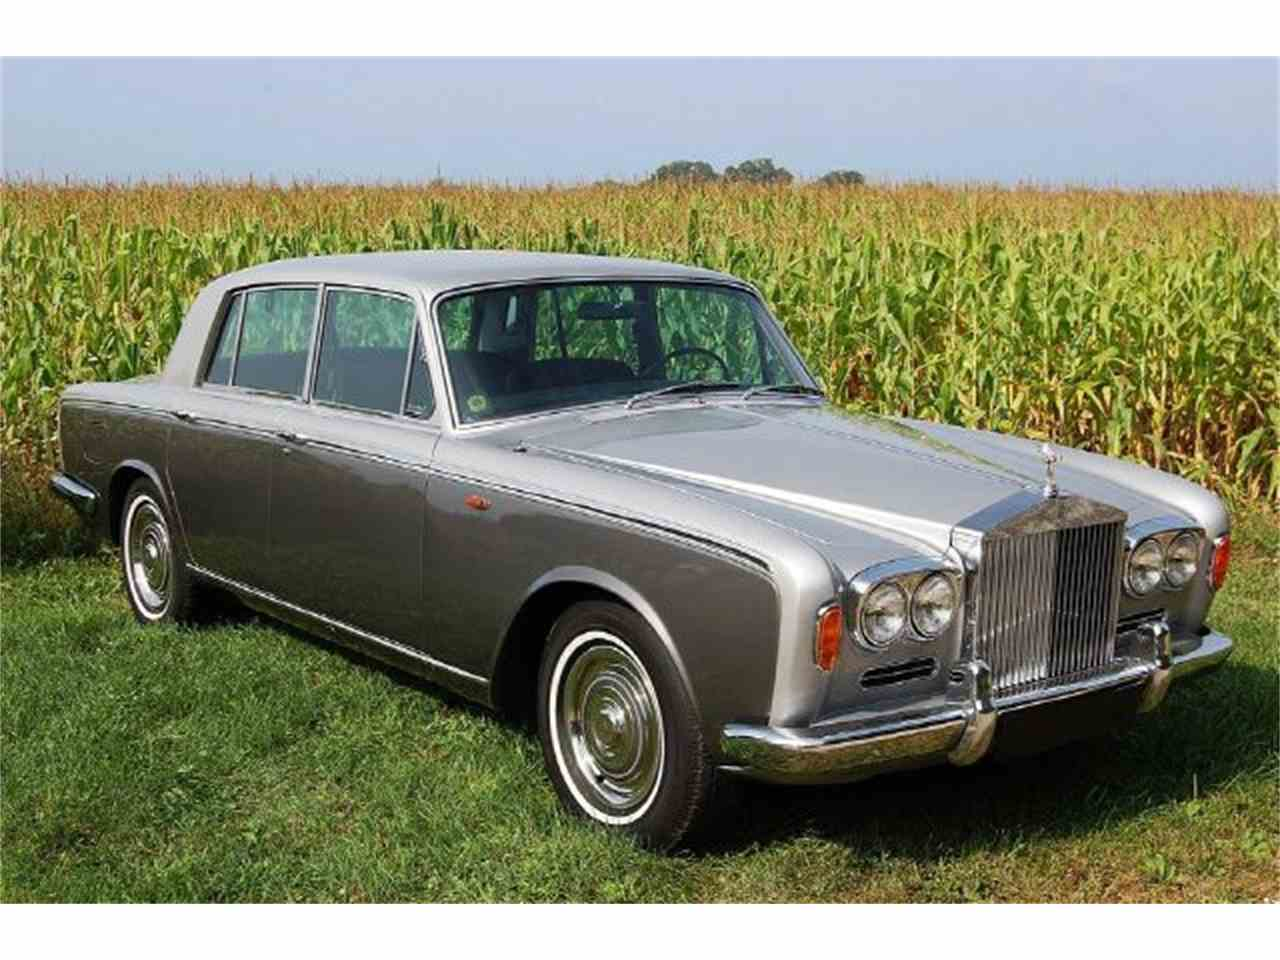 Large Picture of '73 Rolls-Royce Silver Shadow located in Carey Illinois Auction Vehicle Offered by Park-Ward Motors - A949